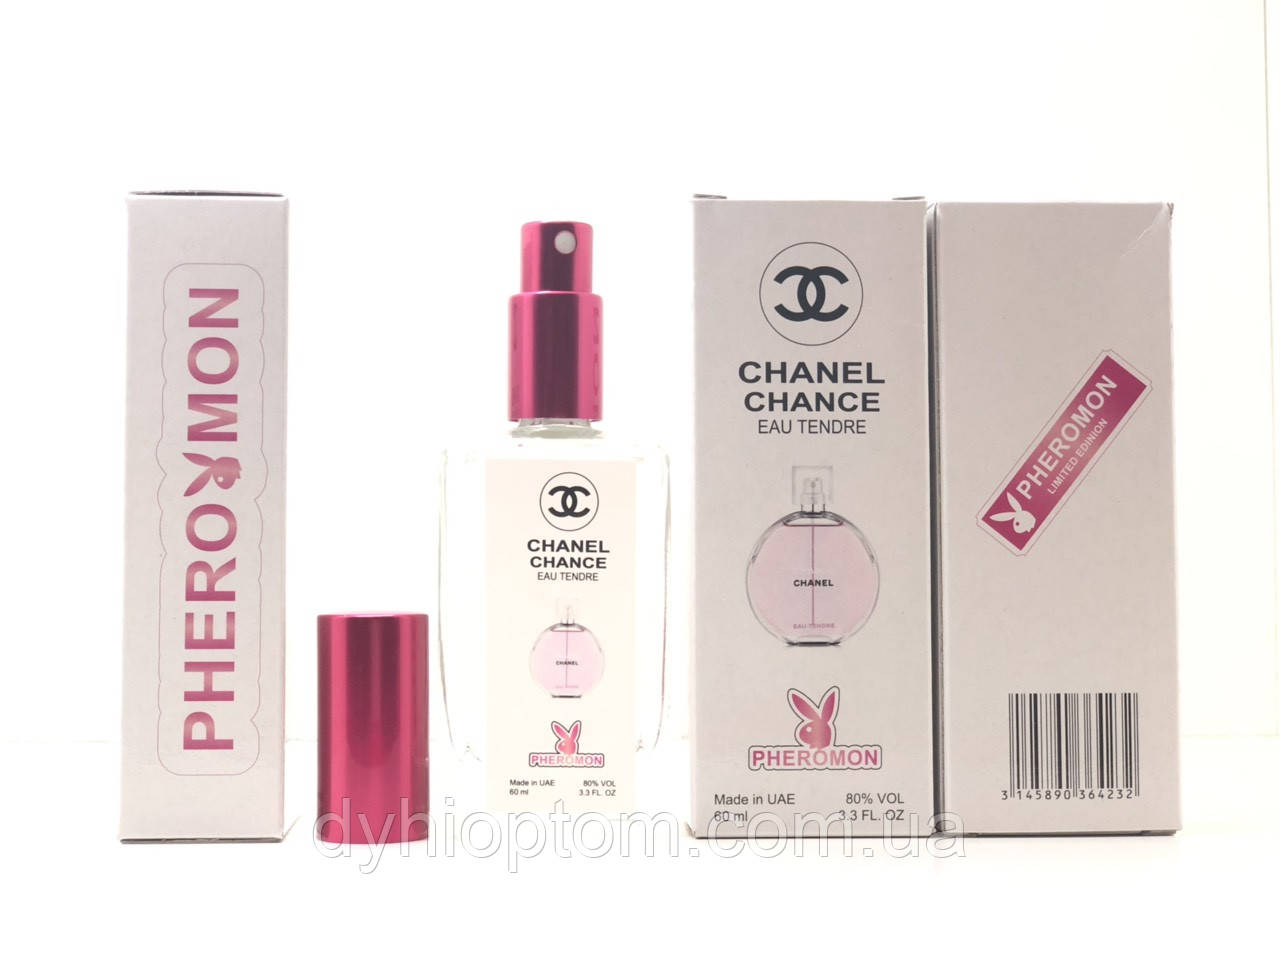 Женский парфюм Chanel Chance Eau Tendre, 60 ml